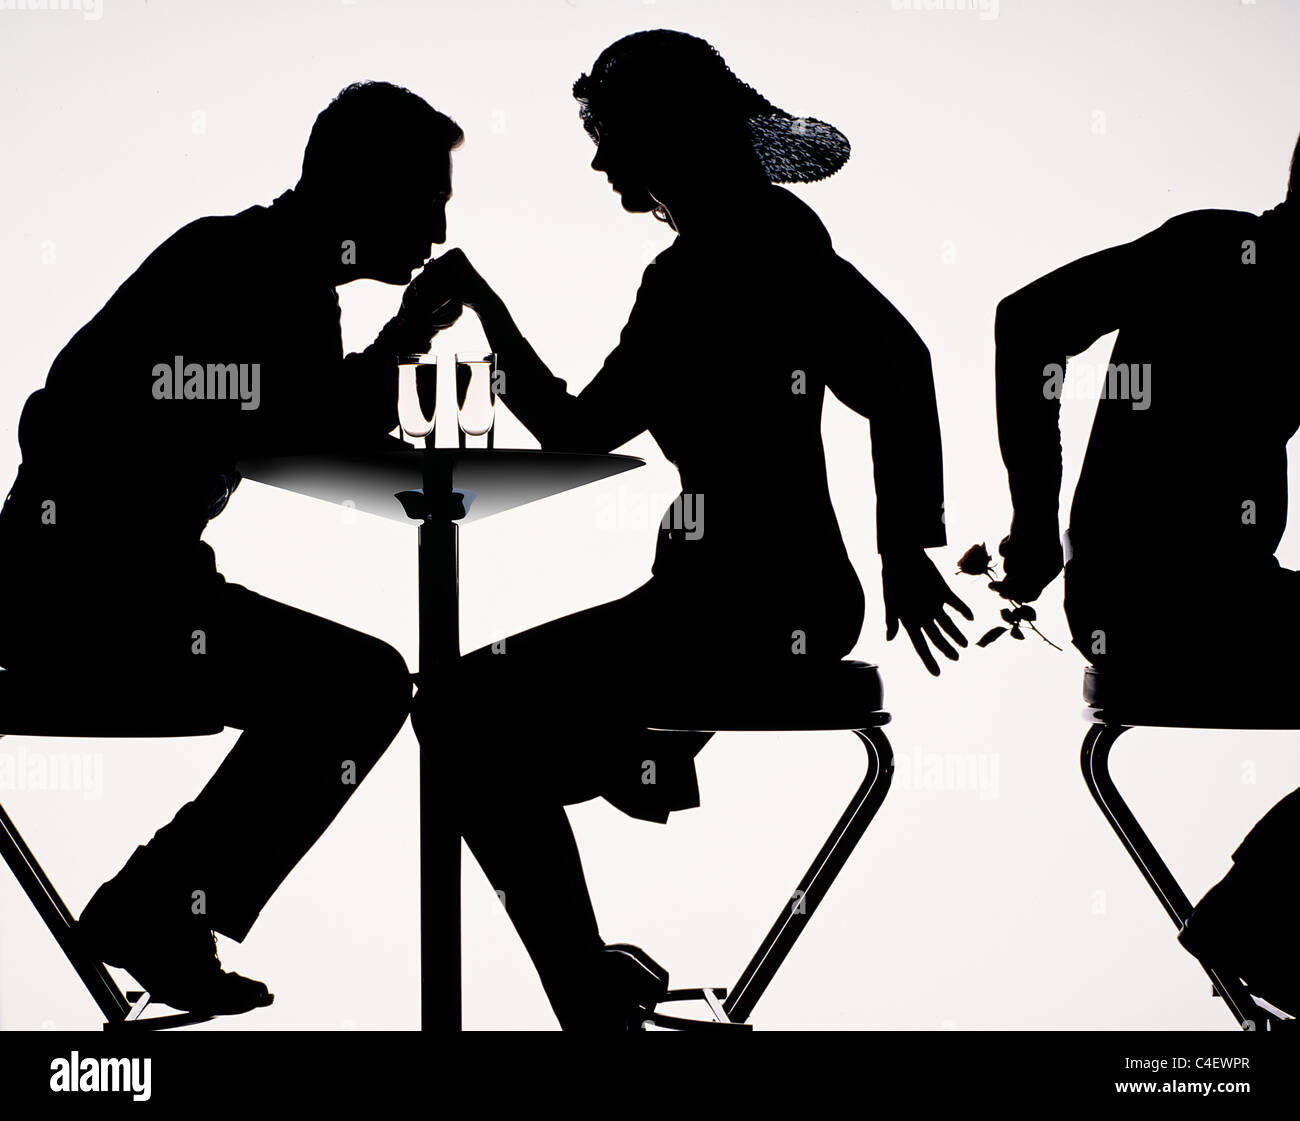 Silhouette of a couple at restaurant royalty free stock photos image - Image Gallery Silhouette Bar